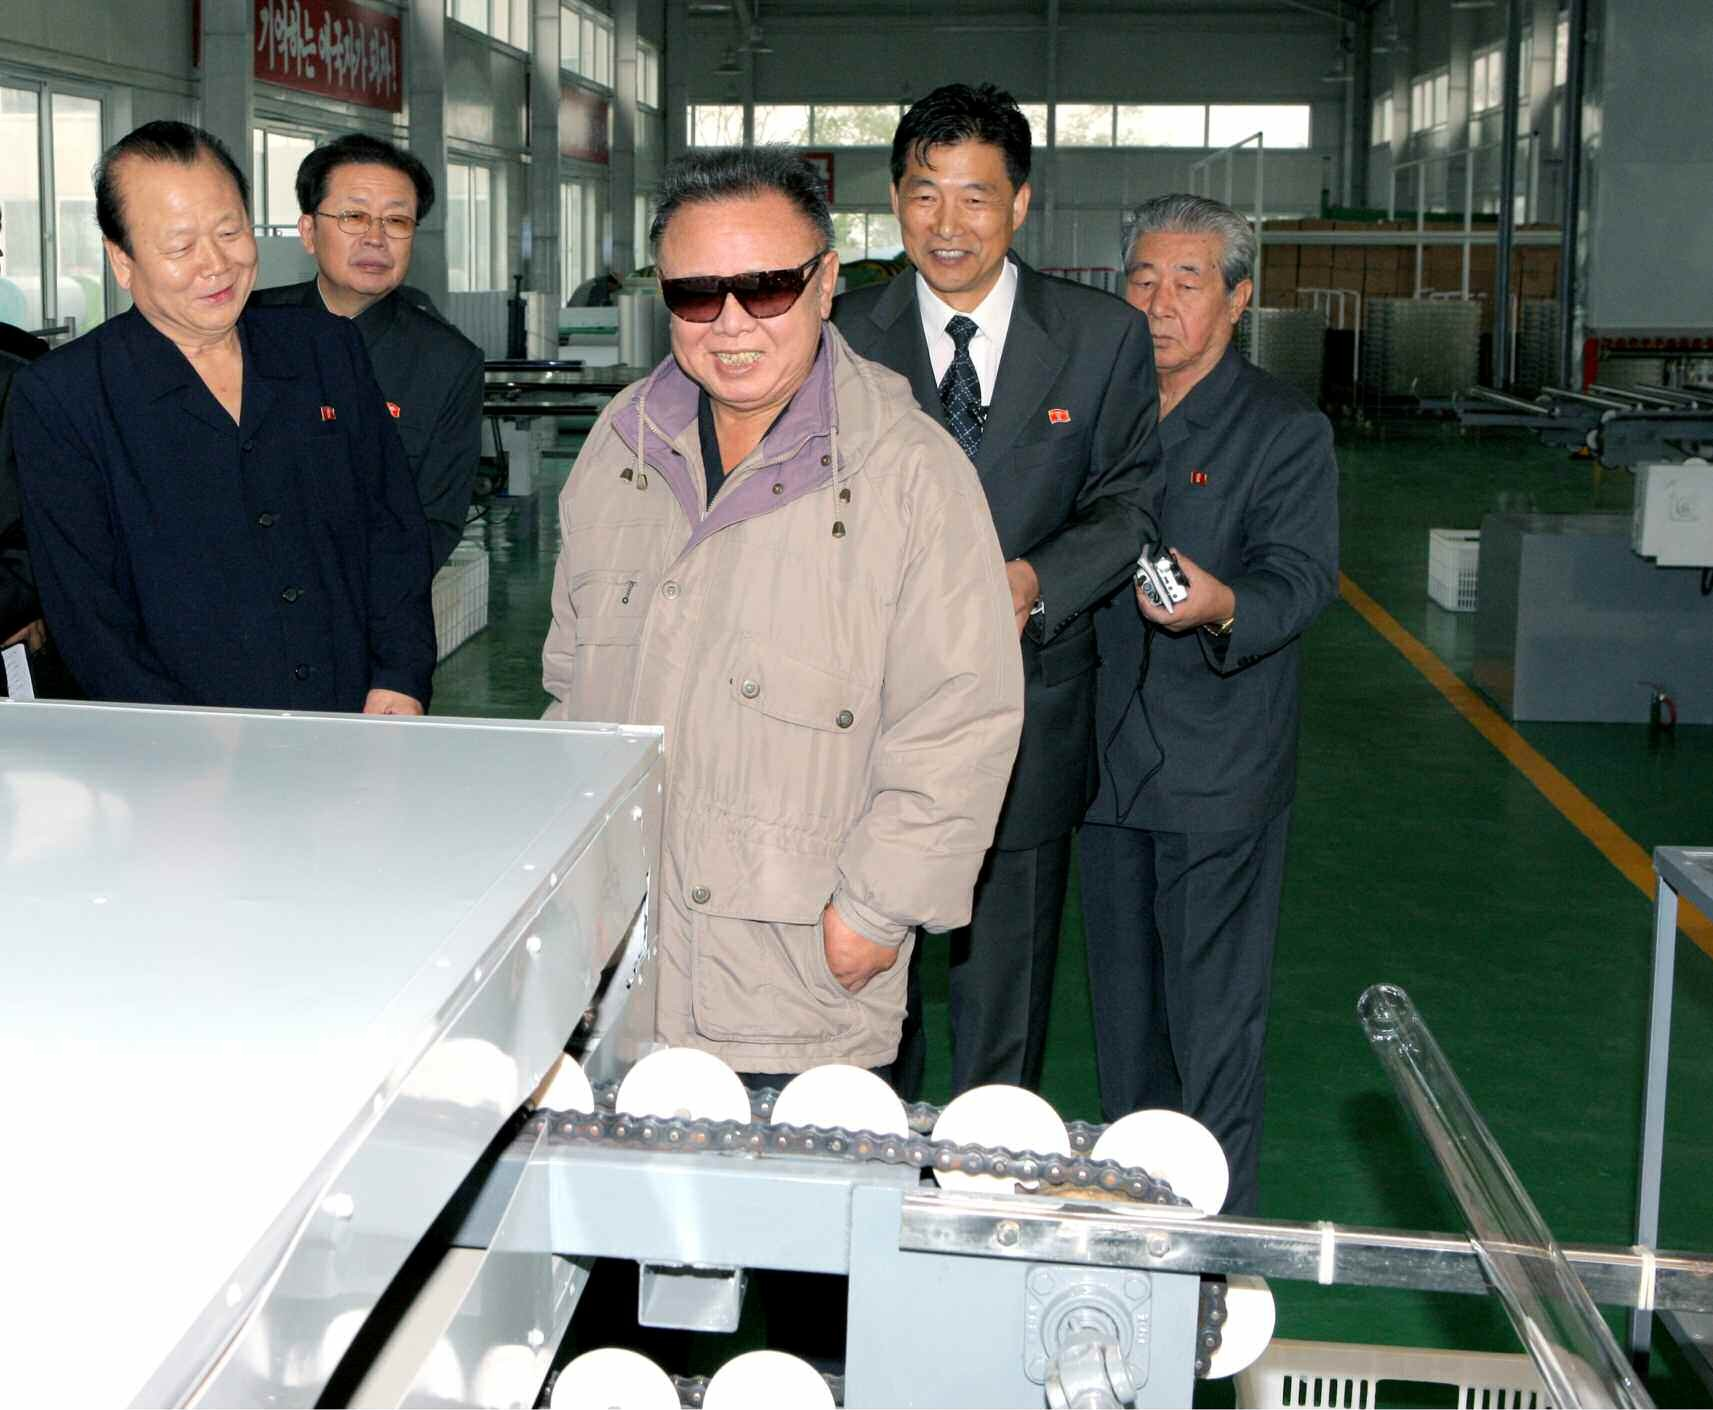 Pak To Chun (L) with late DPRK leader Kim Jong Il in 2011. Also seen in attendance is NDC Vice Chairman Jang Song Taek (2nd L), a factory manager (2nd R) and Ju Kyu Chang, Director of the KWP Machine-Building Industry Department (R) (Photo: KCNA/NKLW archive photo).